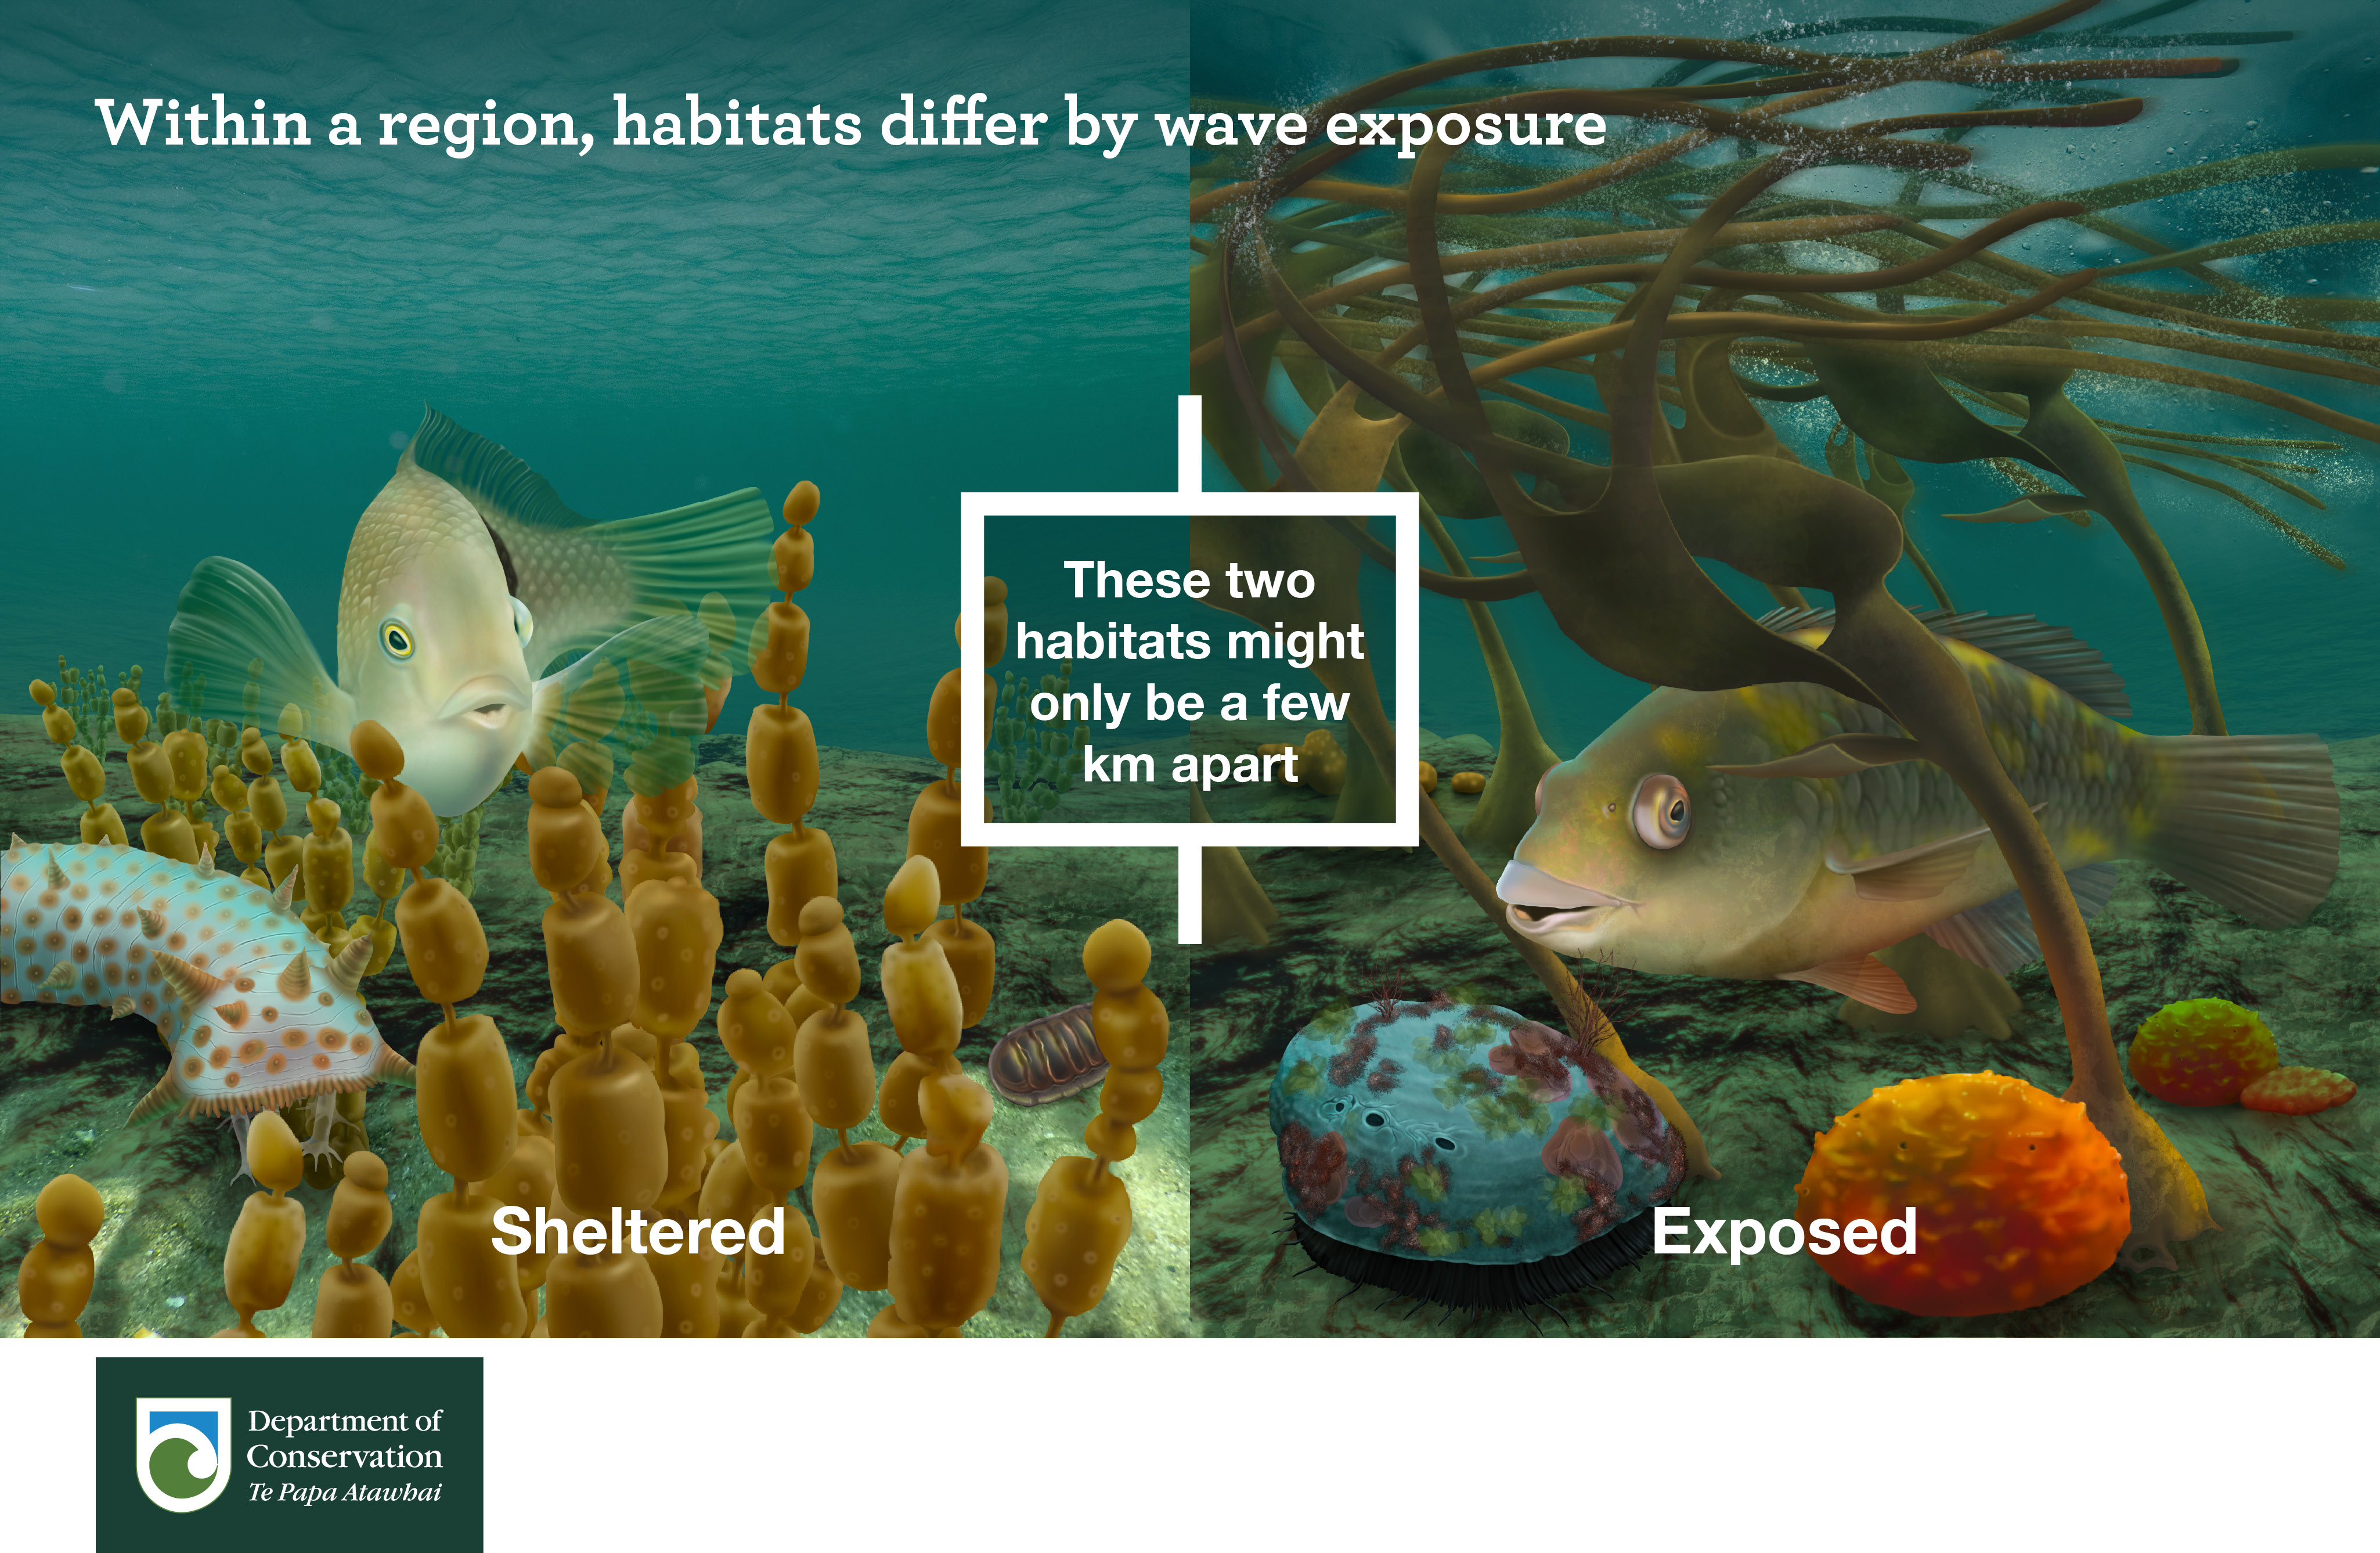 Within a region habitats differ by wave exposure